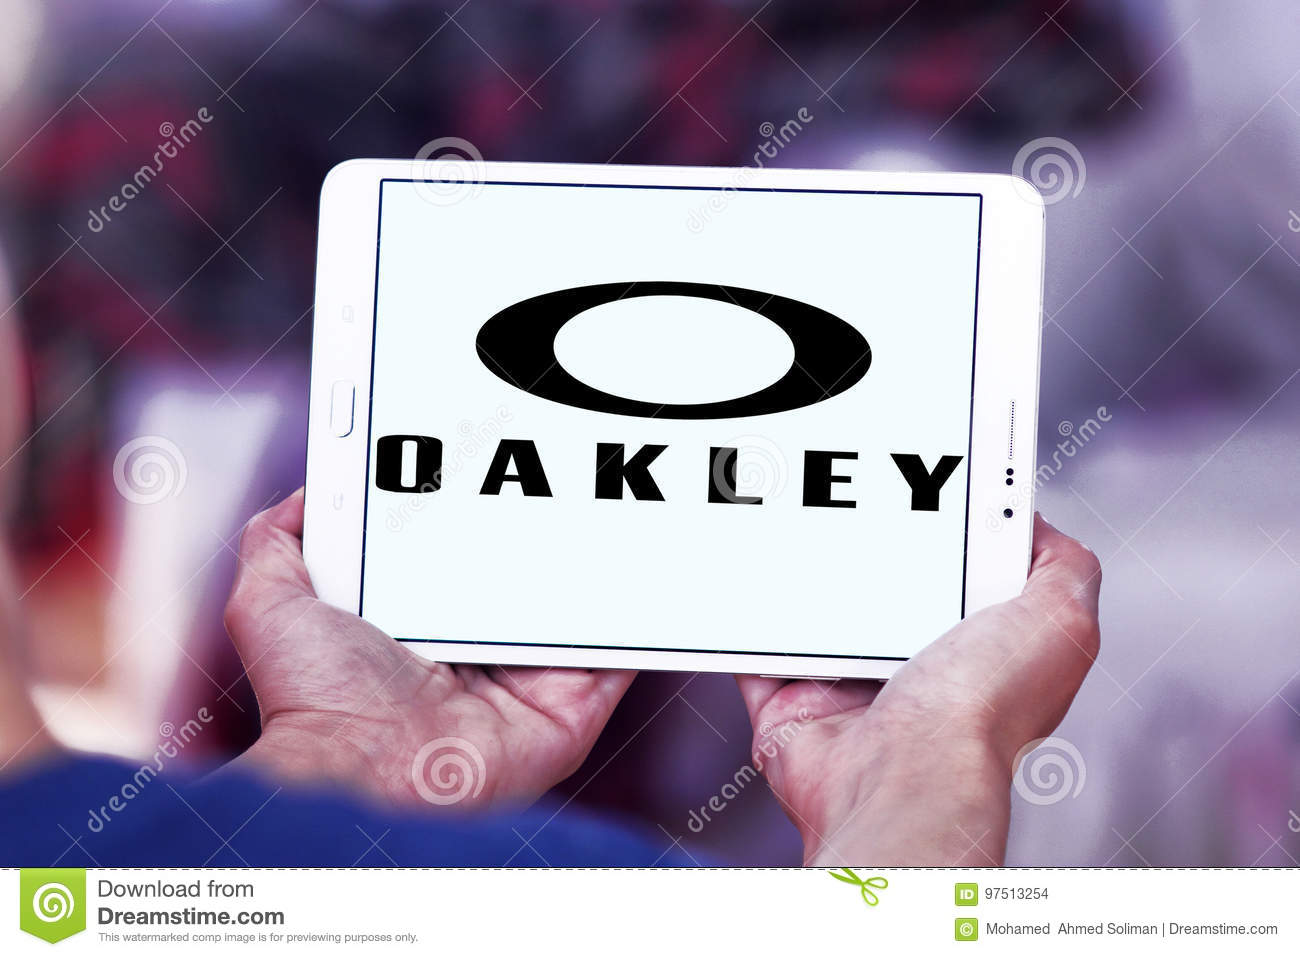 468a8398b0 Oakley logo editorial stock image. Image of accessories - 97513254